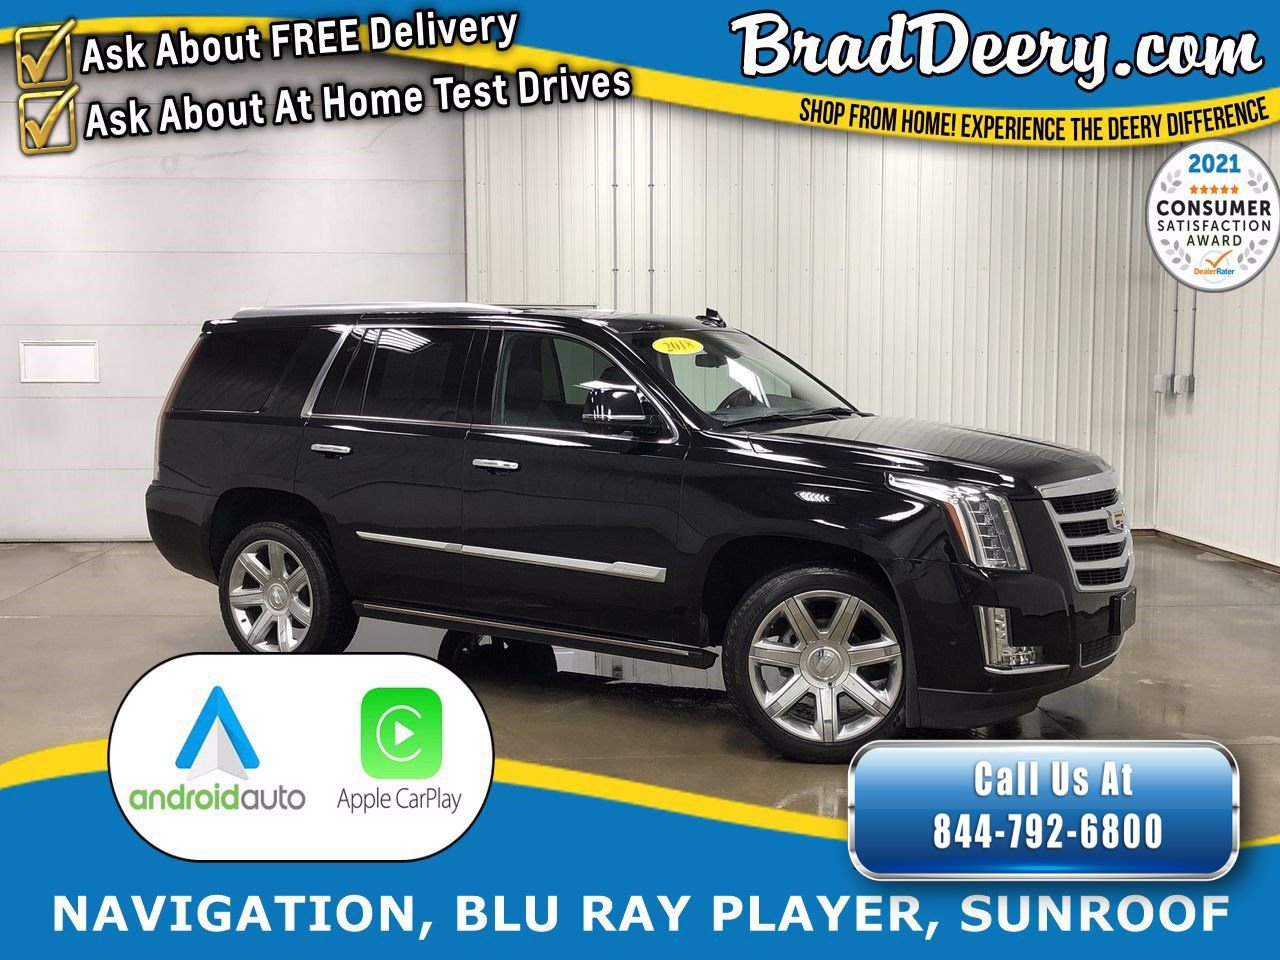 2018 Cadillac Escalade Premium Luxury 4WD w/ Blu-Ray/DVD Rear Entertainment, Sunroof, Navigation, Heated & Cooled Leather